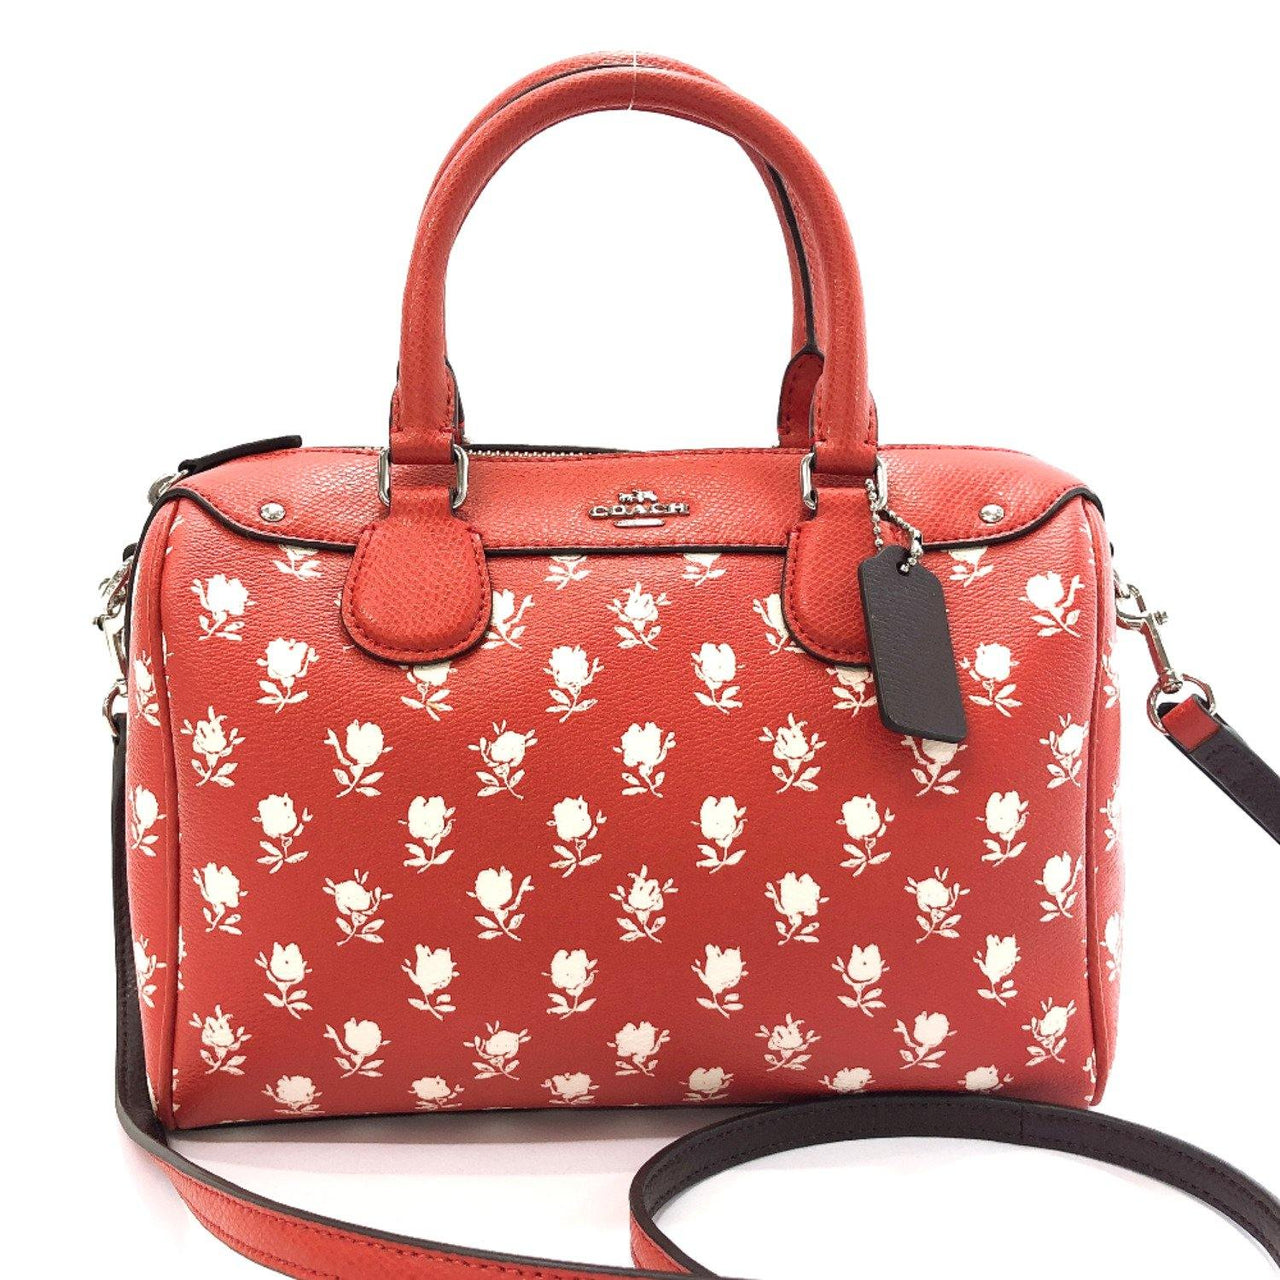 COACH Handbag F38160 Mini Boston PVC Red Women Used - JP-BRANDS.com